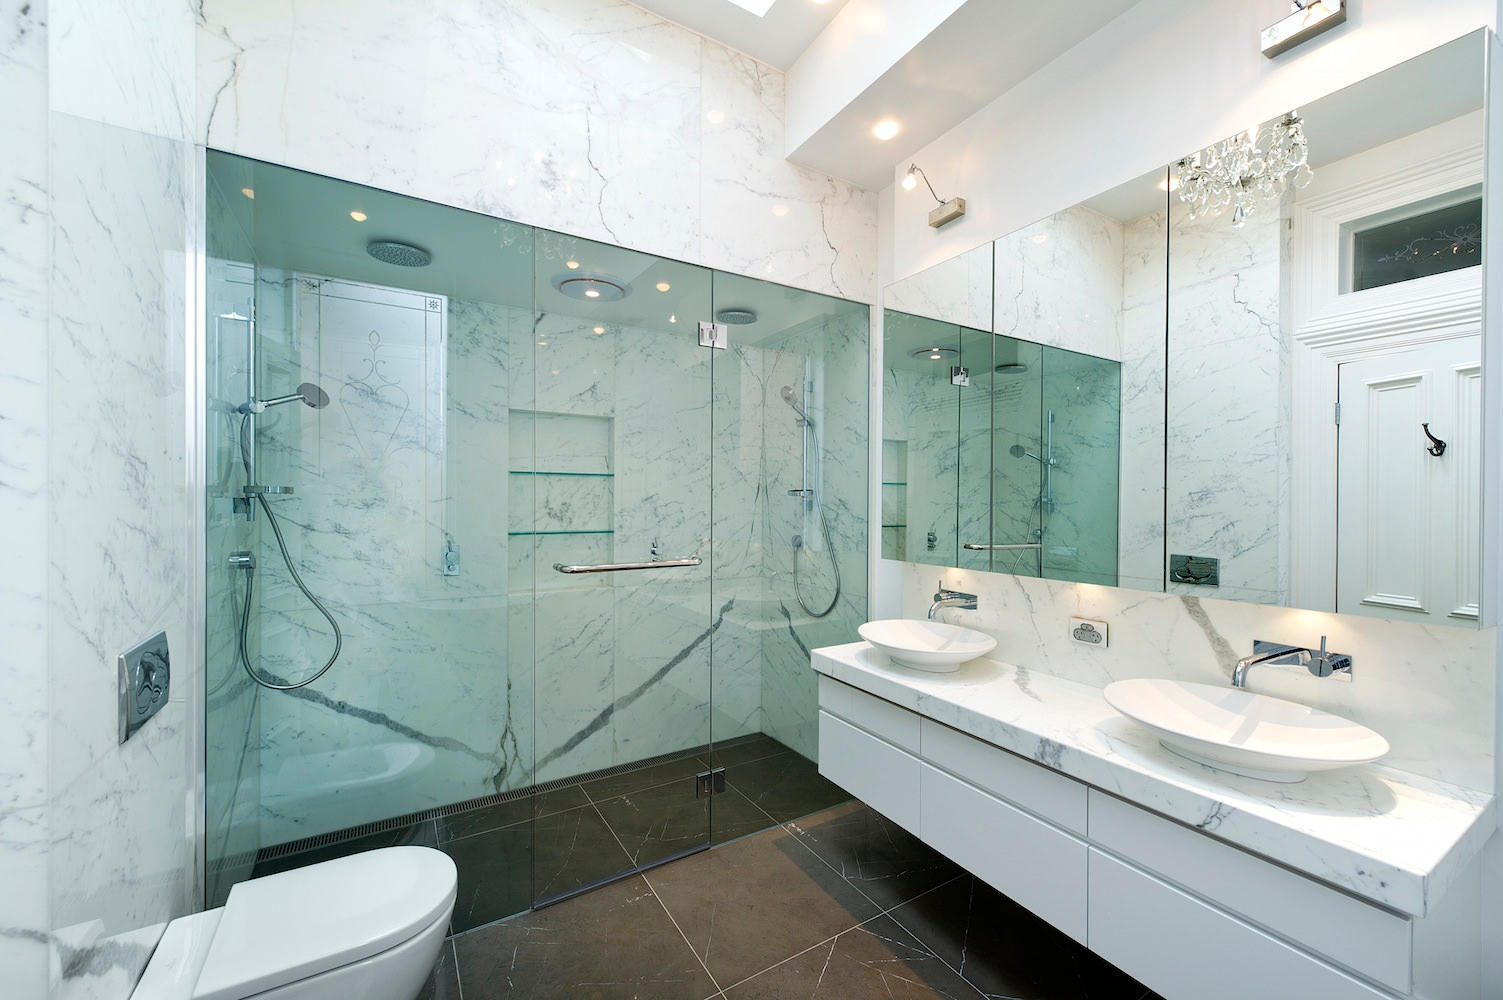 Clear Floor Space Guidelines For Accessible Bathrooms Find – Accessible Bathroom